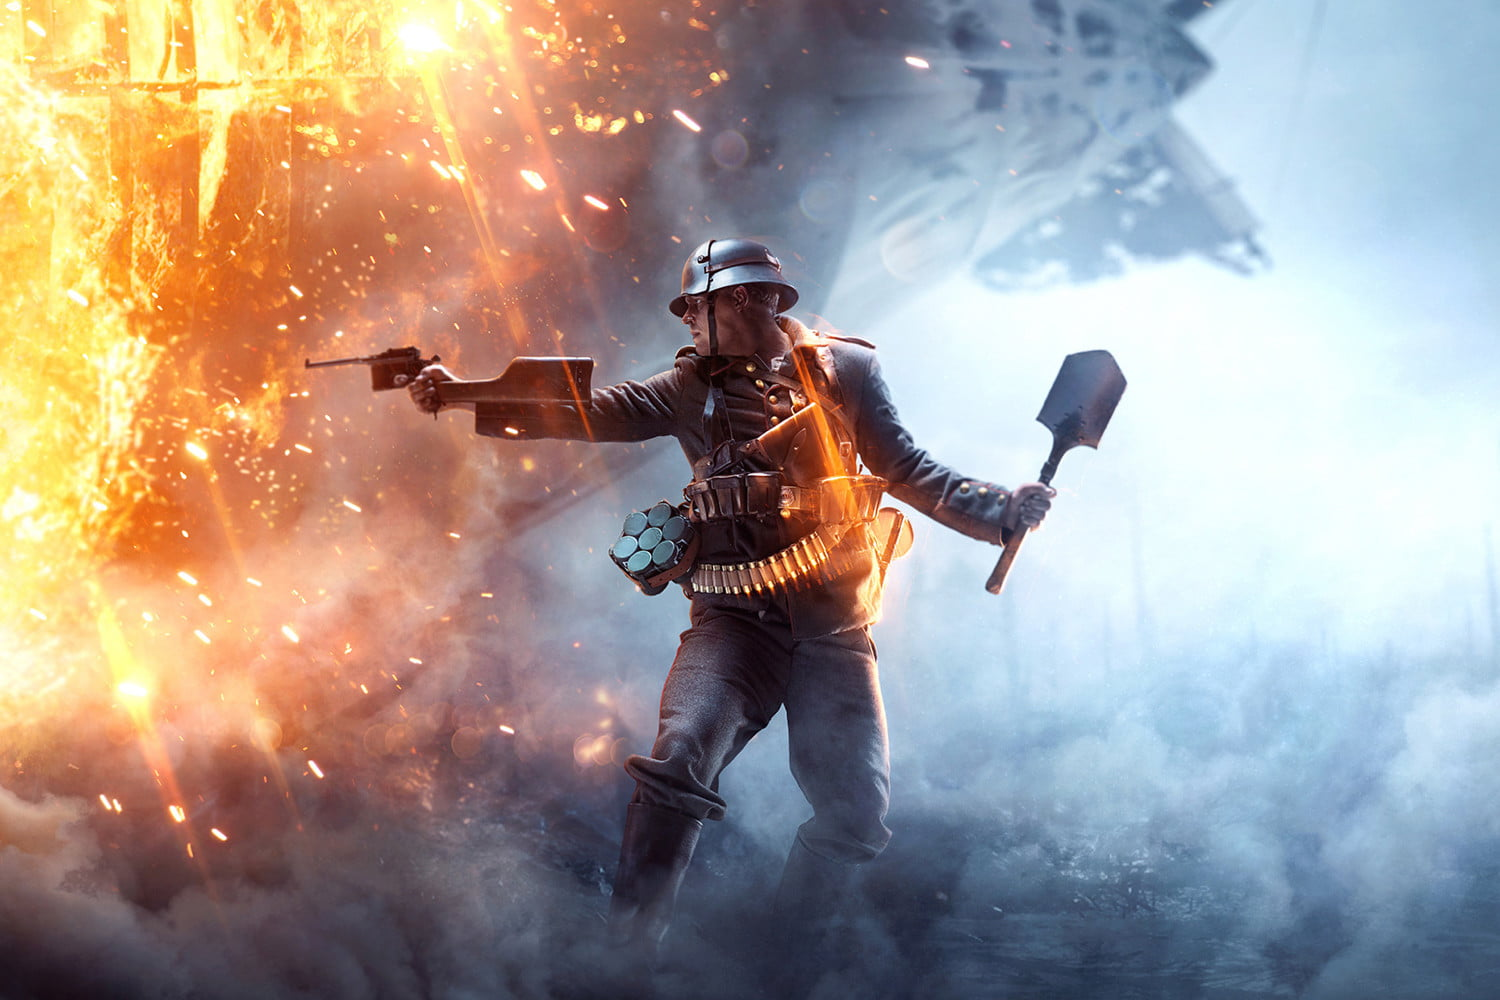 Battlefield 1 PC Performance Guide: How to Maximize FPS